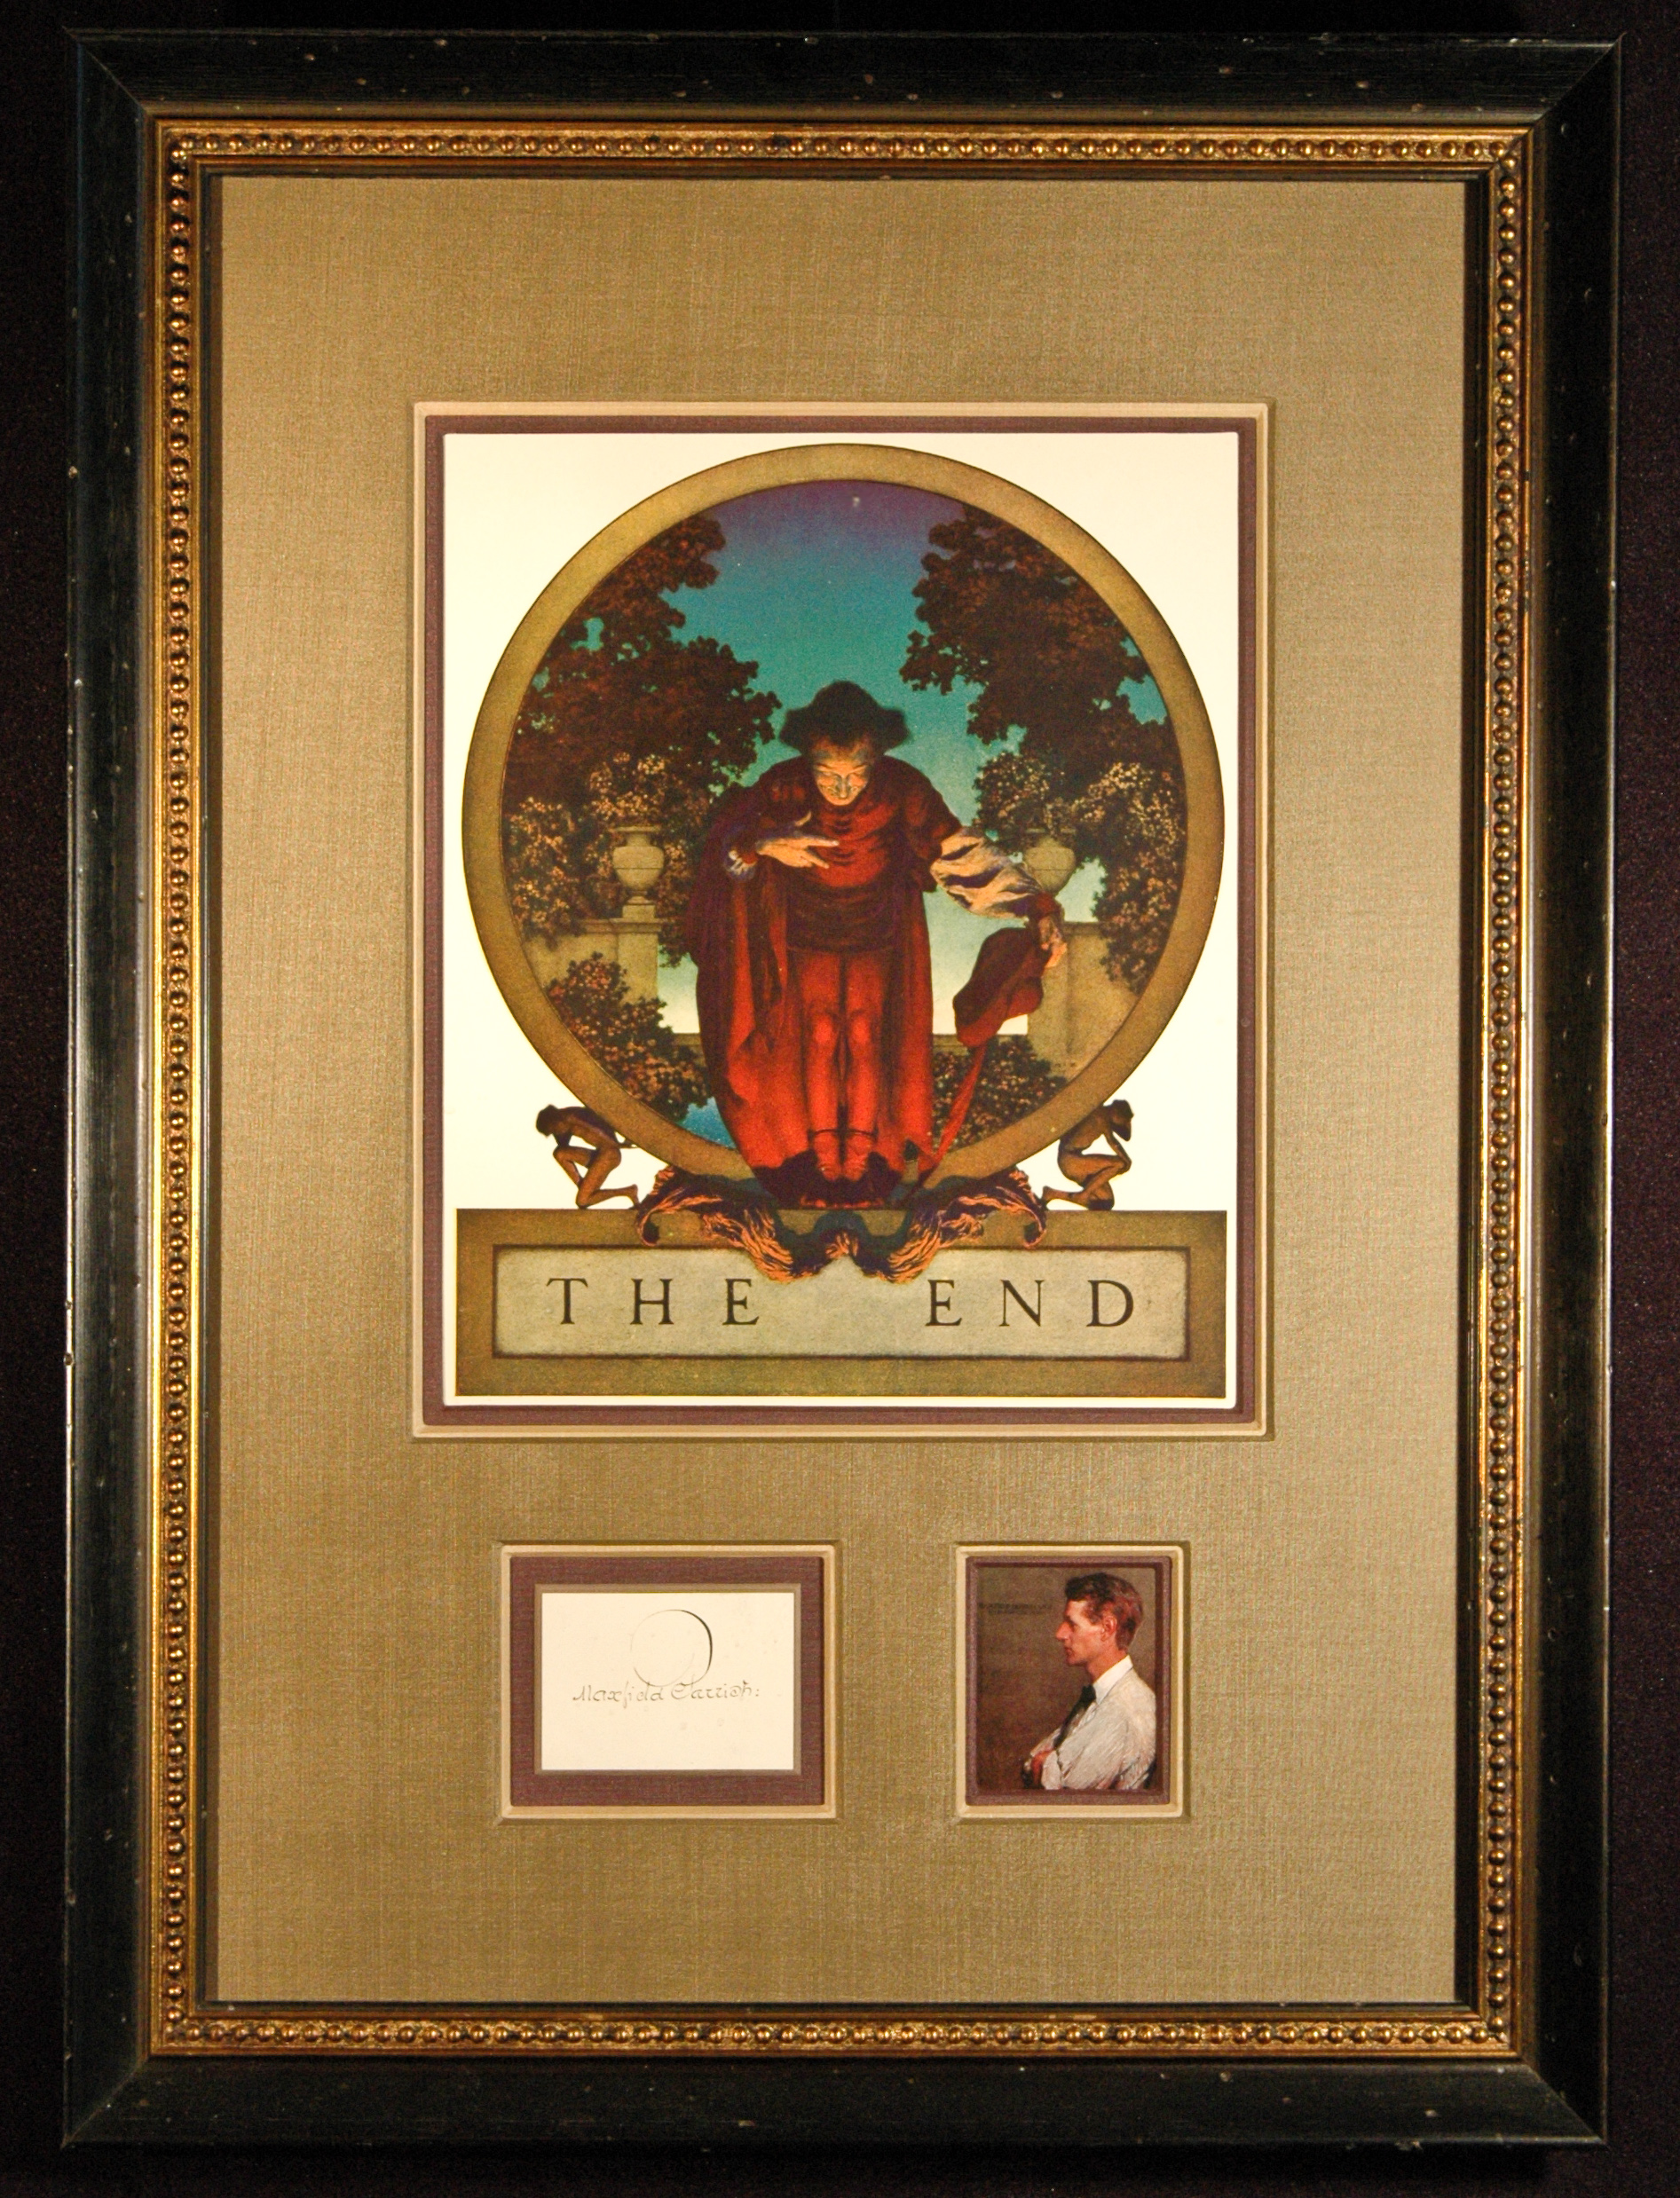 Maxfield Parrish Signed Autograph Signature Framed With